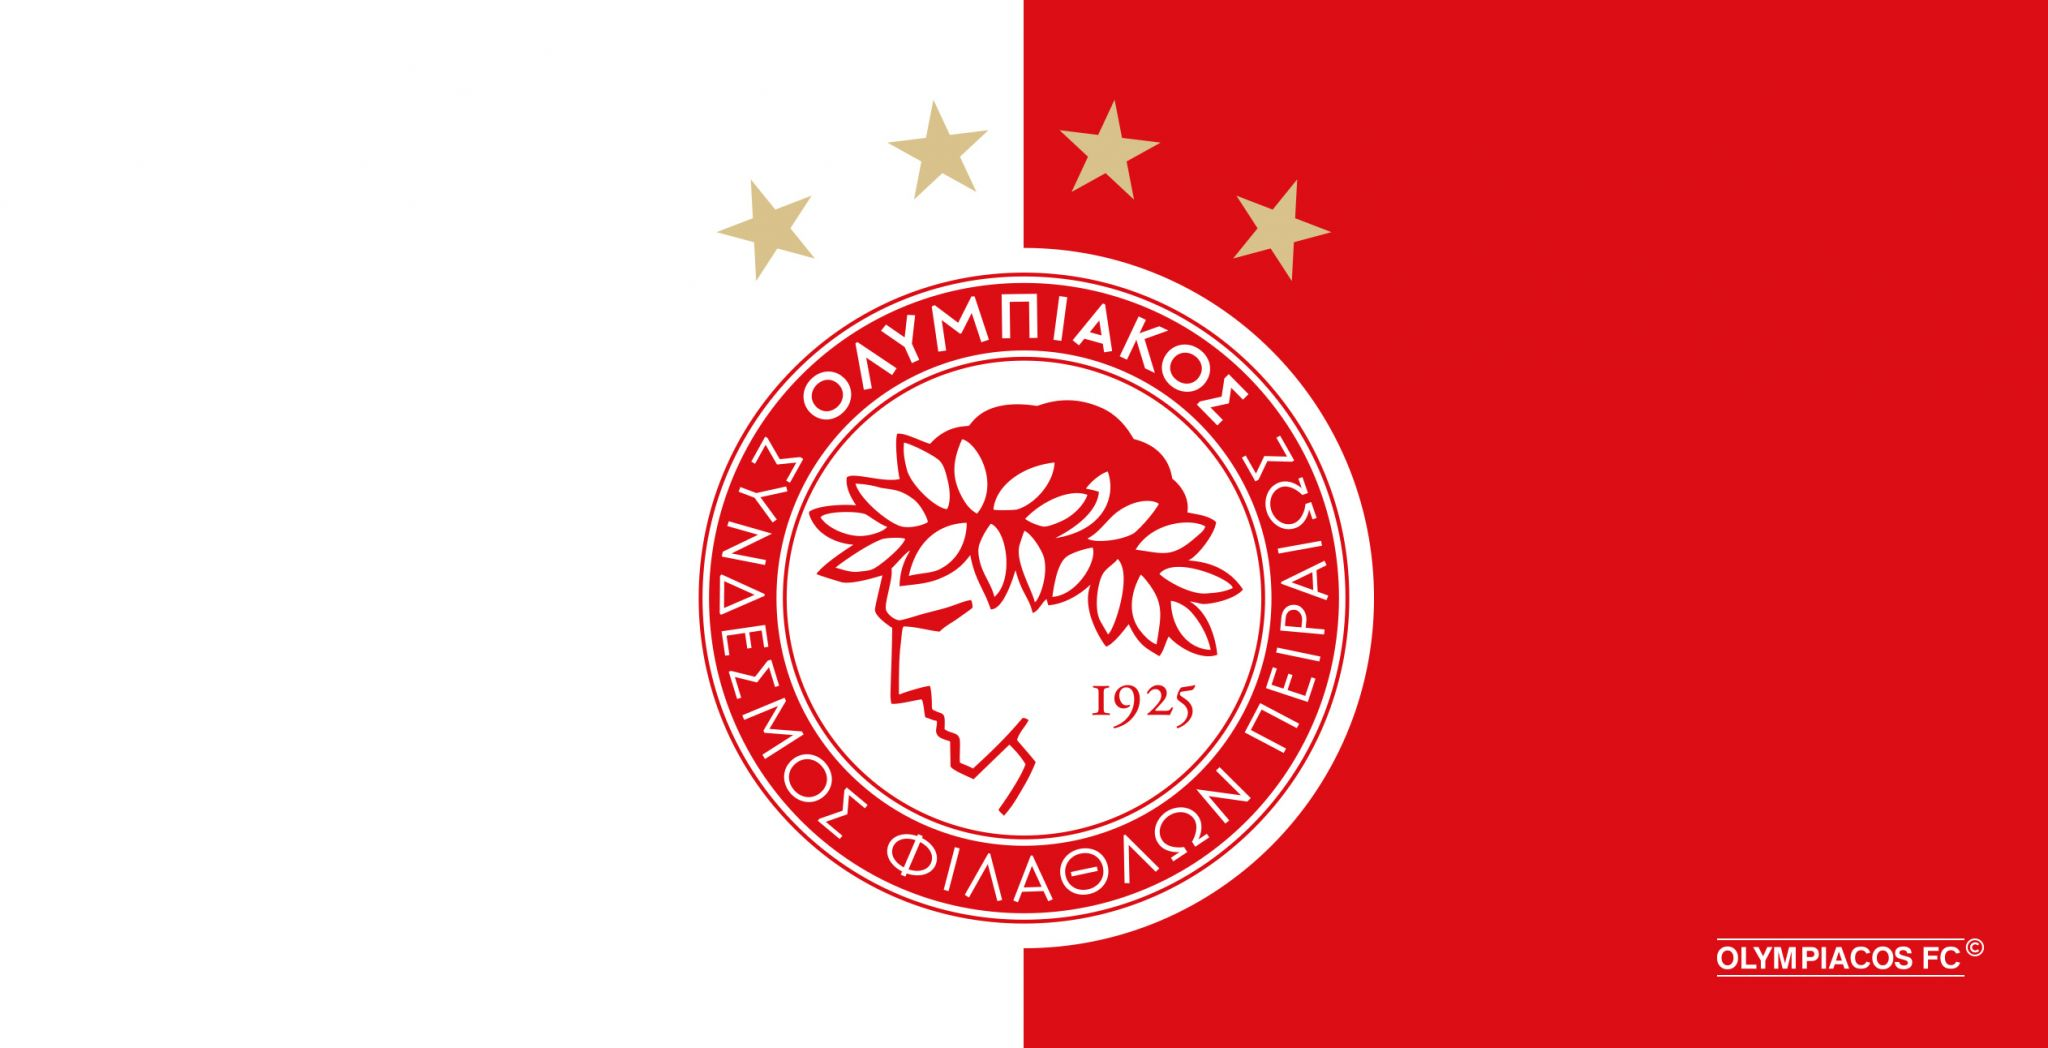 Olympiacos FC statement